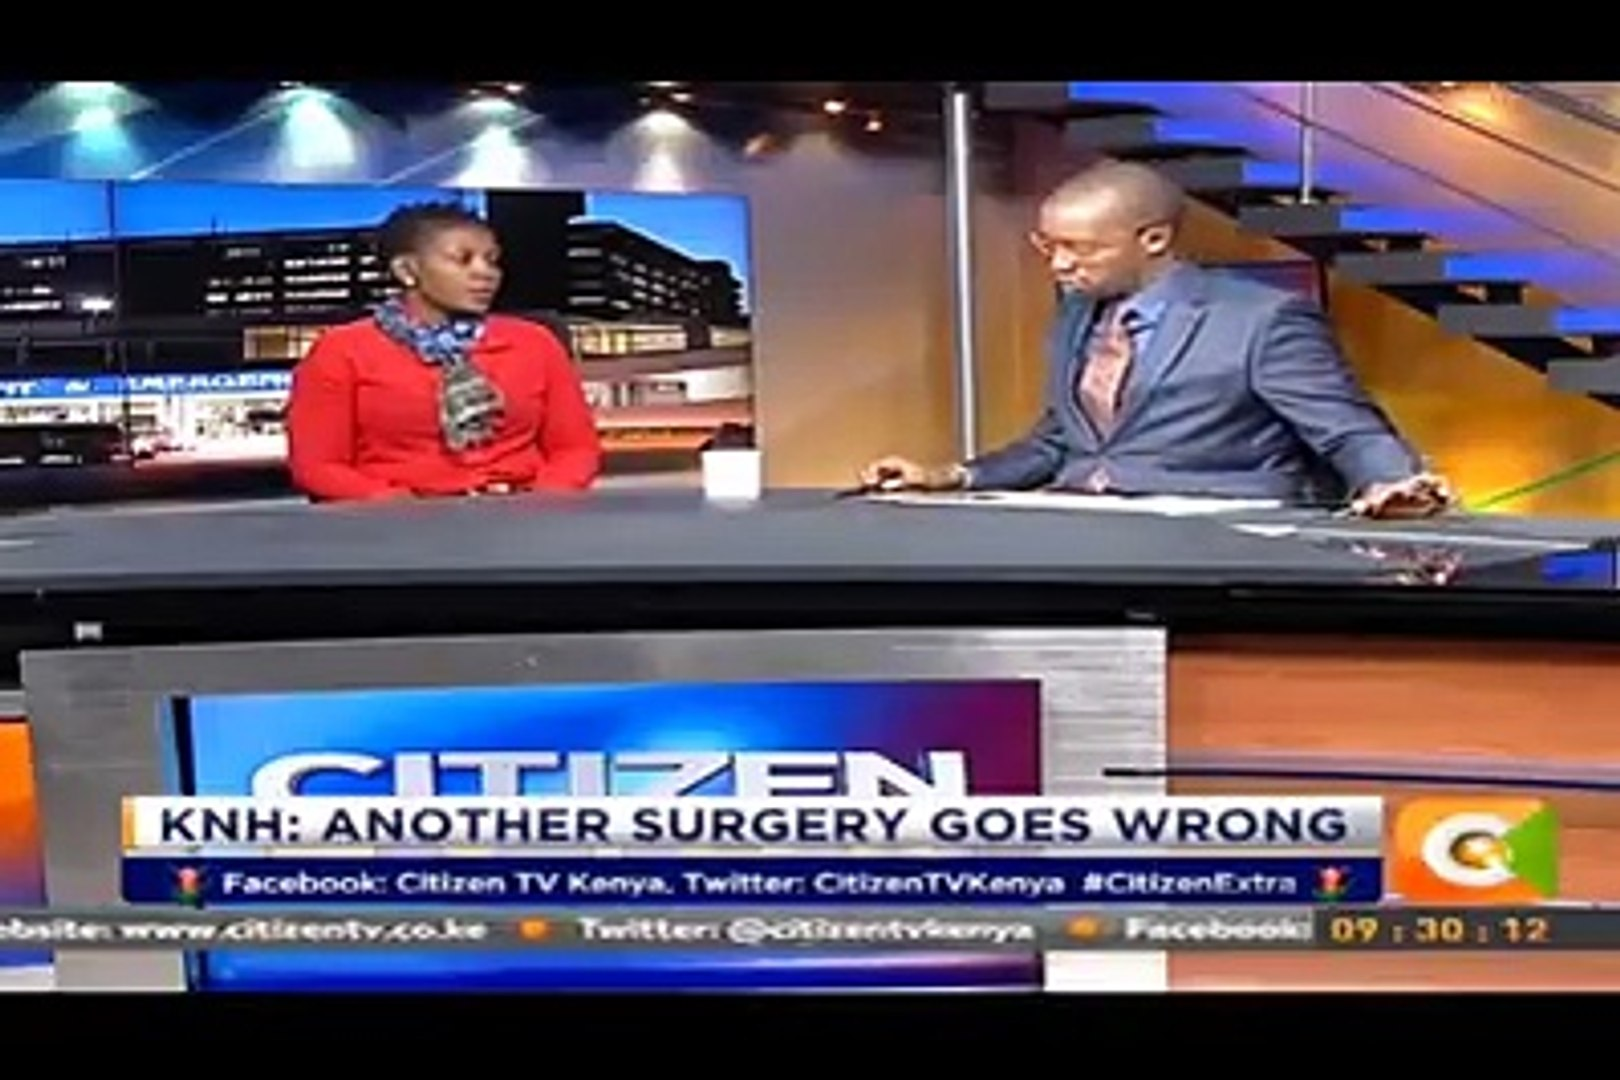 Relative (Everlyne Anindo) to the woman involved in yet another botched surgery at Kenyatta National